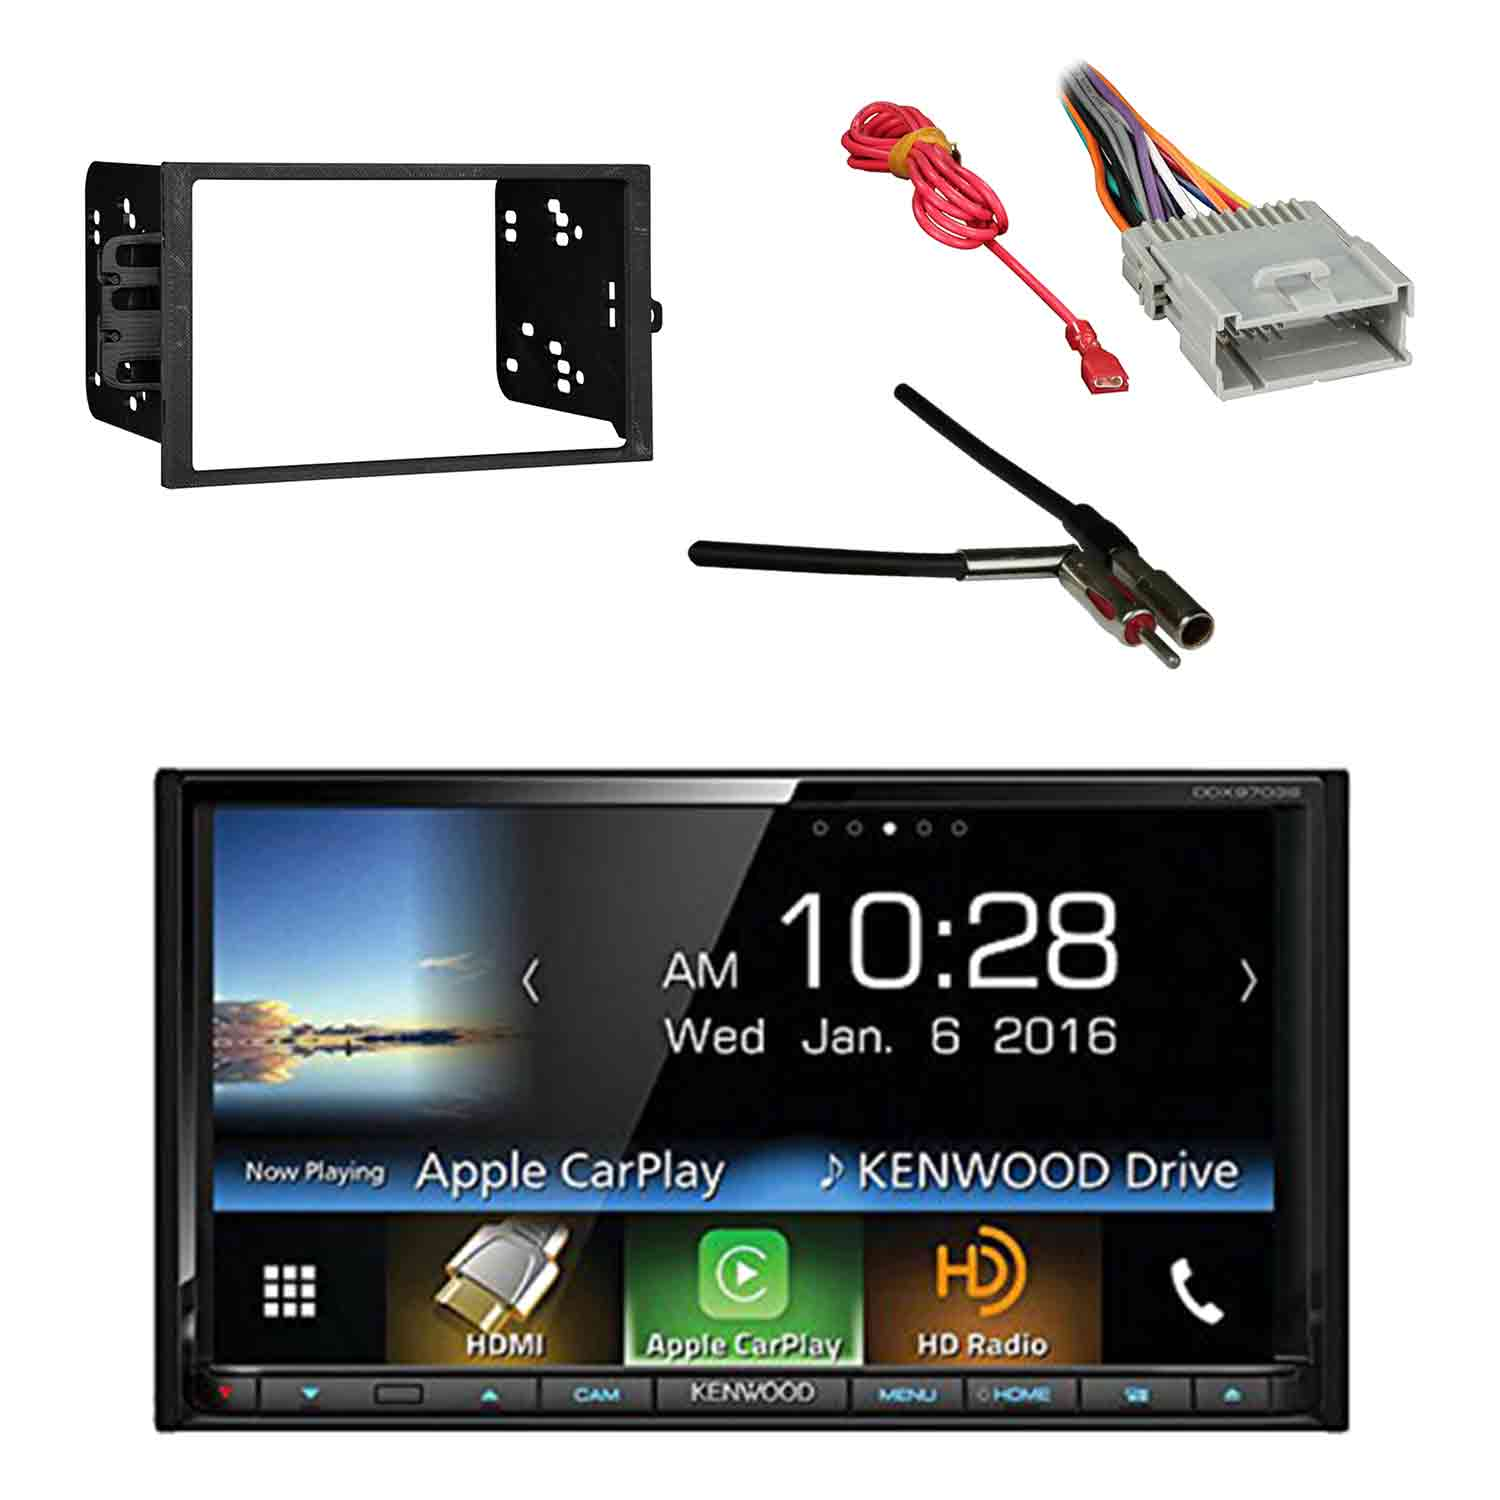 medium resolution of  kenwood ddx9703s 2 din dvd cd am fm car stereo receiver with metra kenwood sub amp